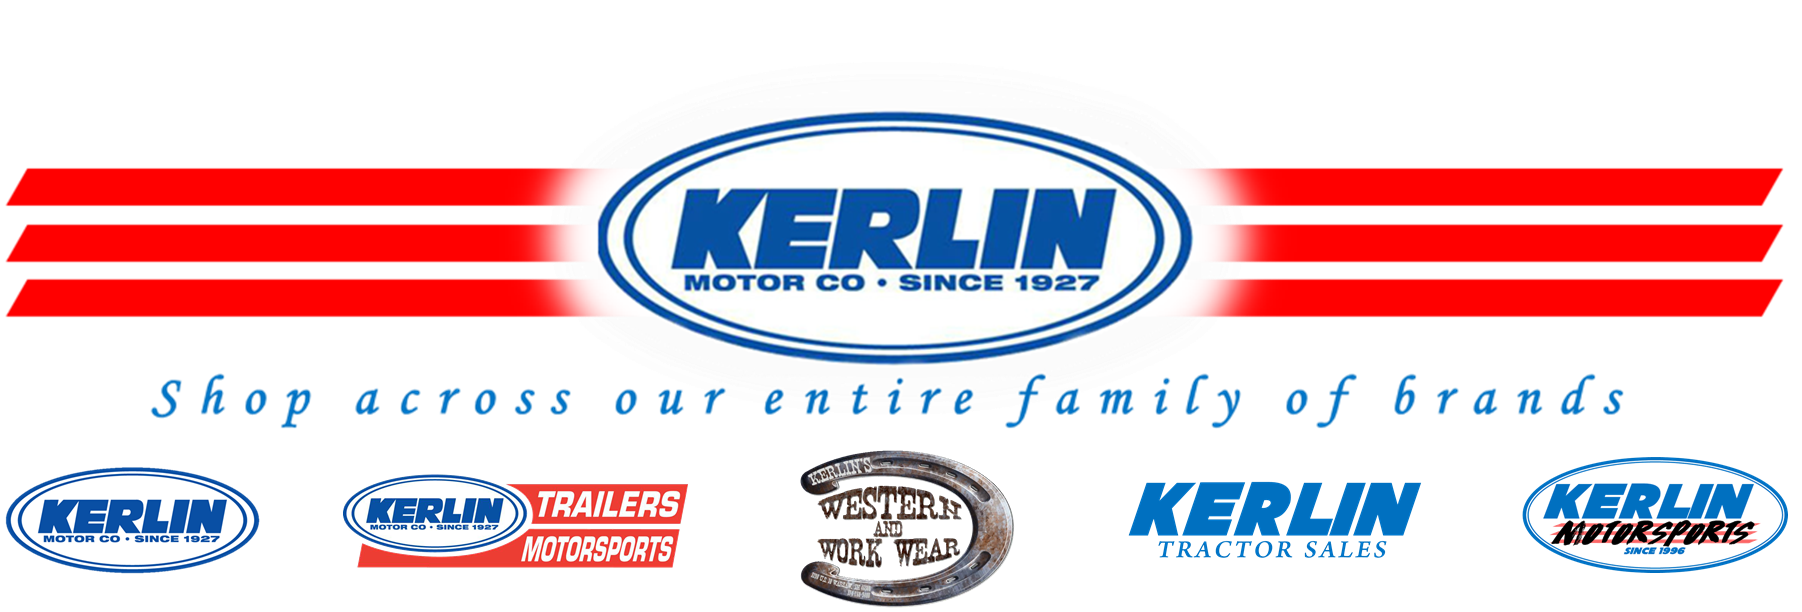 Kerlin Family of Businesses logo